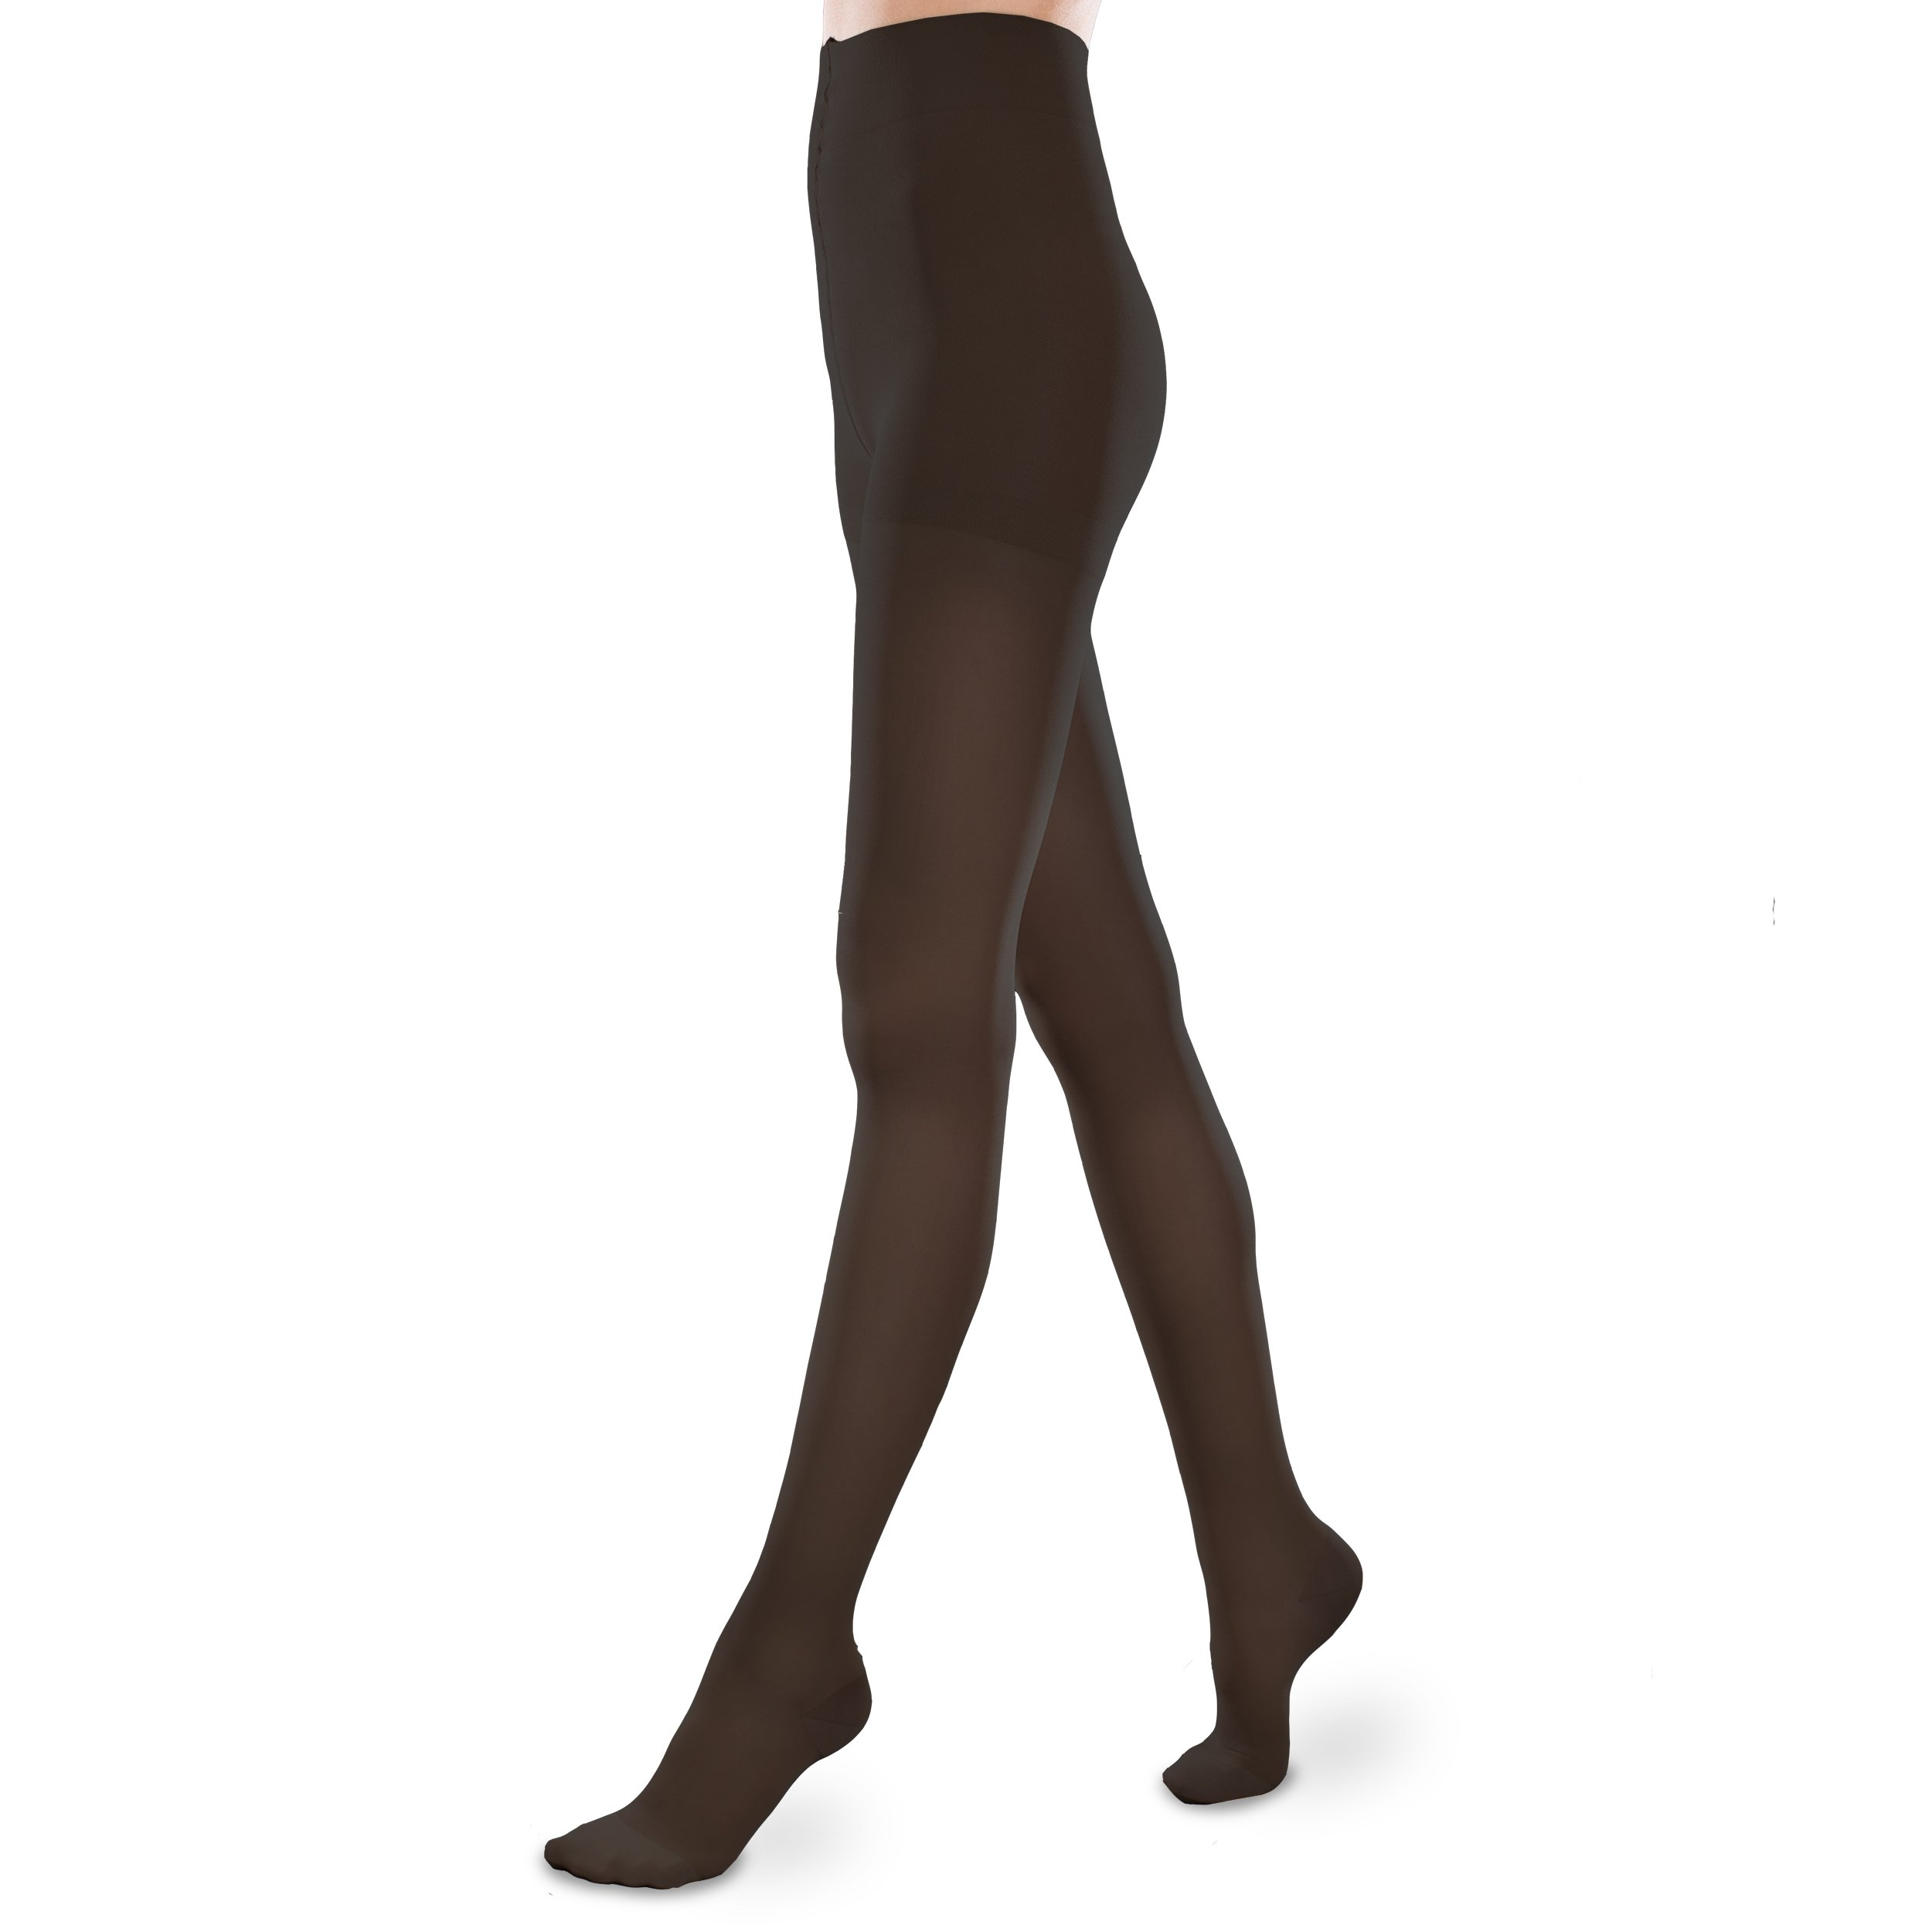 Sheer Ease Women's Support Pantyhose - 20-30mmHg Moderate Compression Stockings (Cocoa, Small Long)